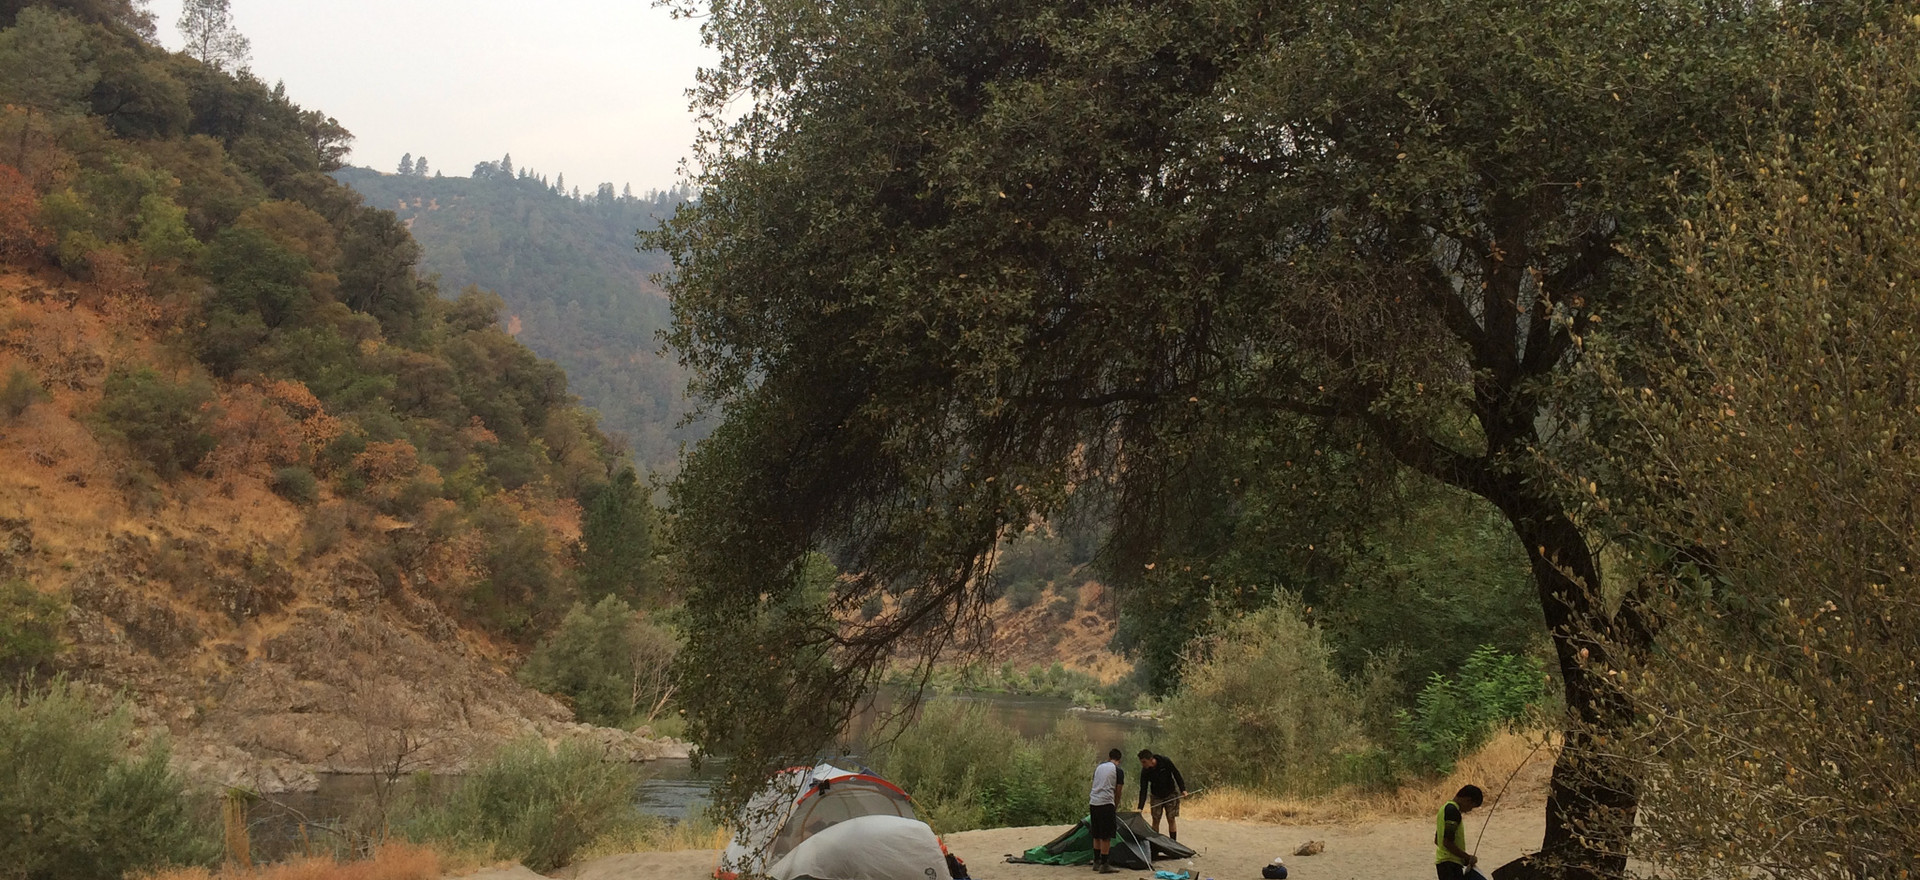 Our favorite campsite on the American River.